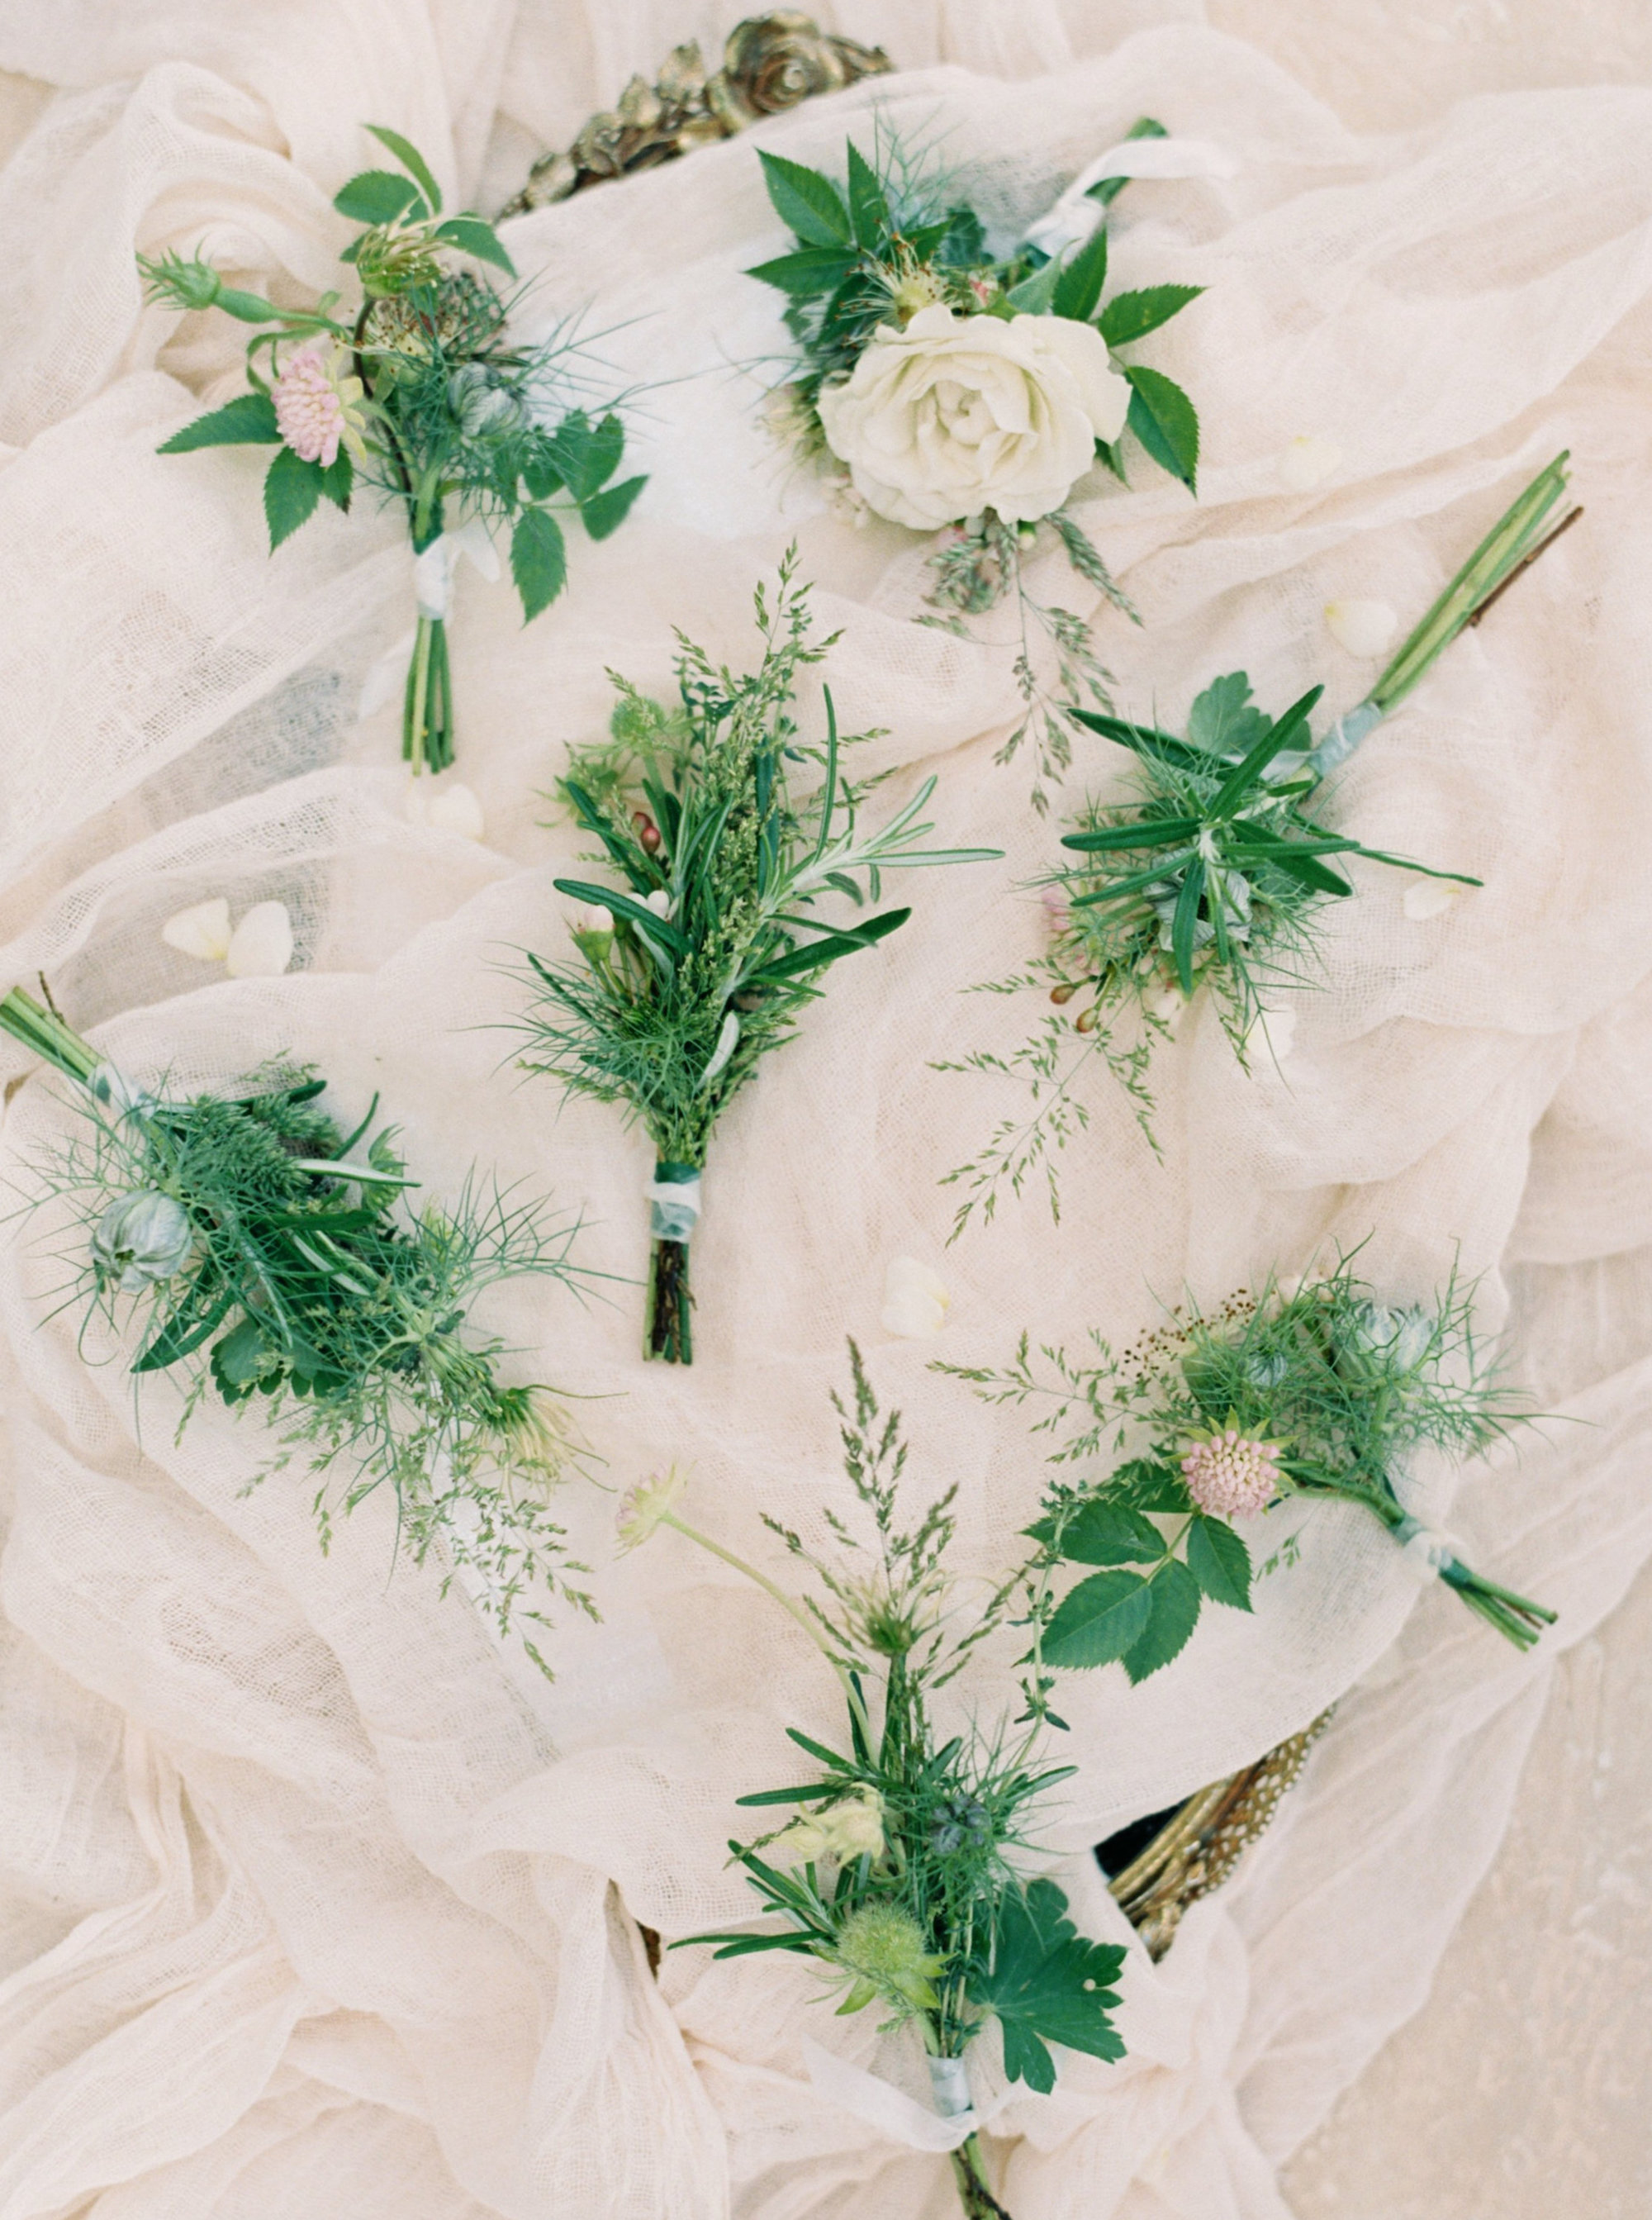 Luxury Wedding Planner UK | Jennifer & Timothy's English Country Manor Wedding | Soft Pink Pale Blue White and Silver Toned Green Neutral Tones American Bride North Cadbury Court | Nicole Colwell Photography 0495.jpg